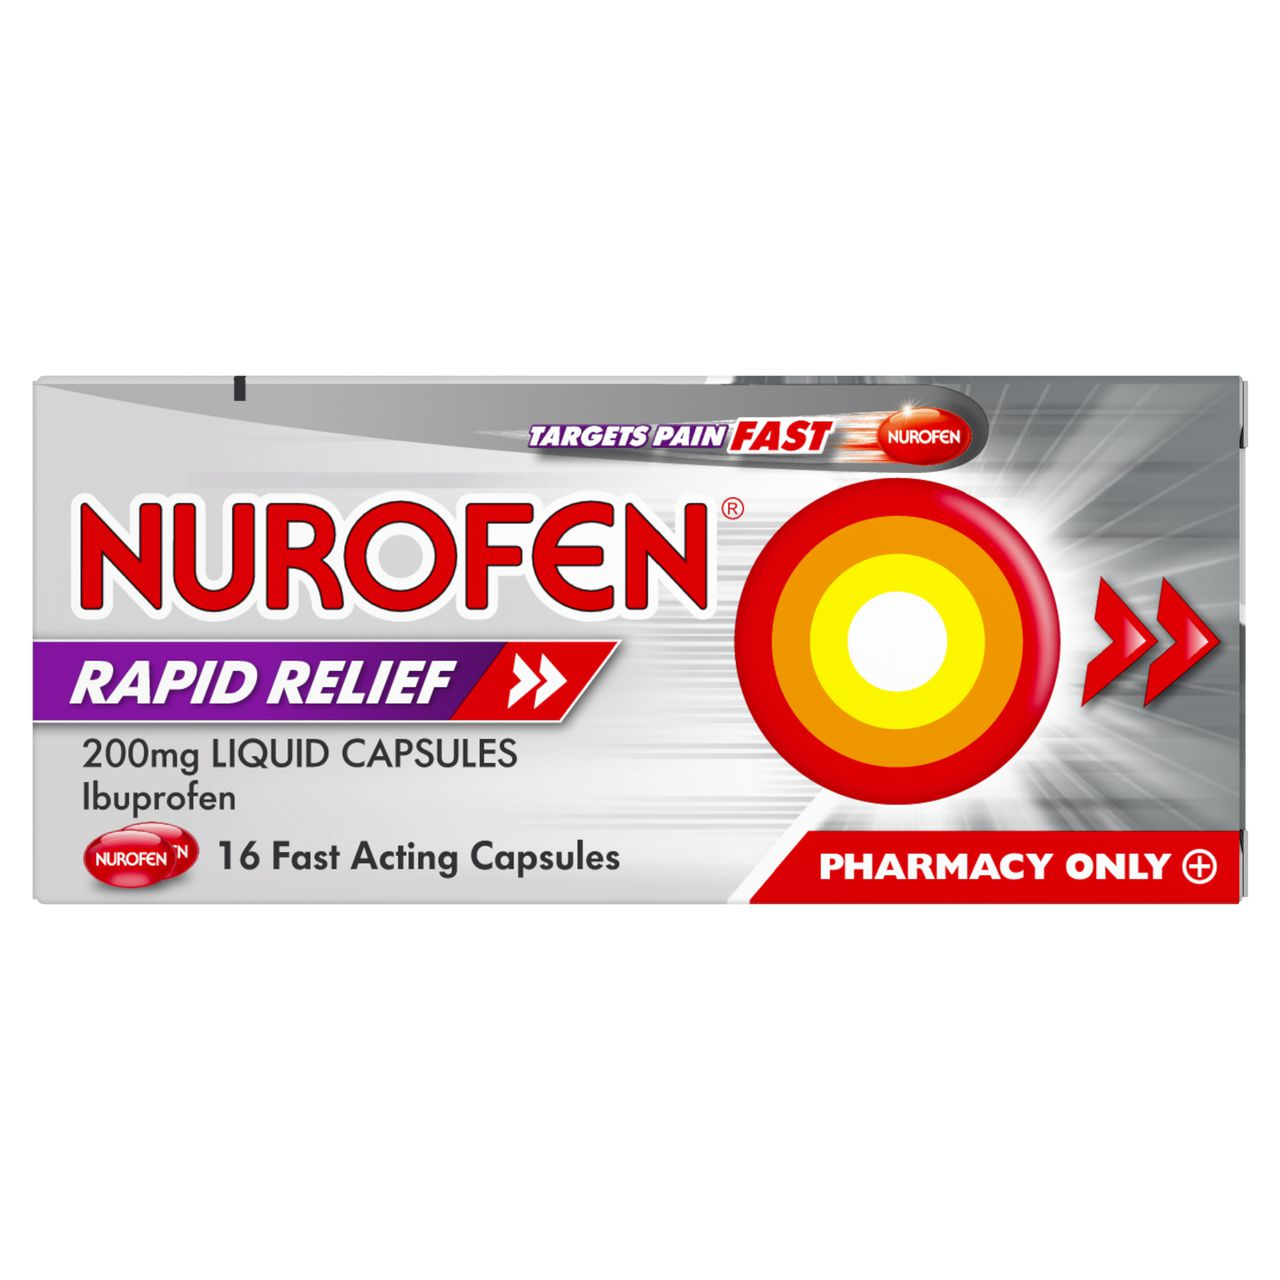 Nurofen Rapid Relief 200mg Liquid Capsules  16 Pack